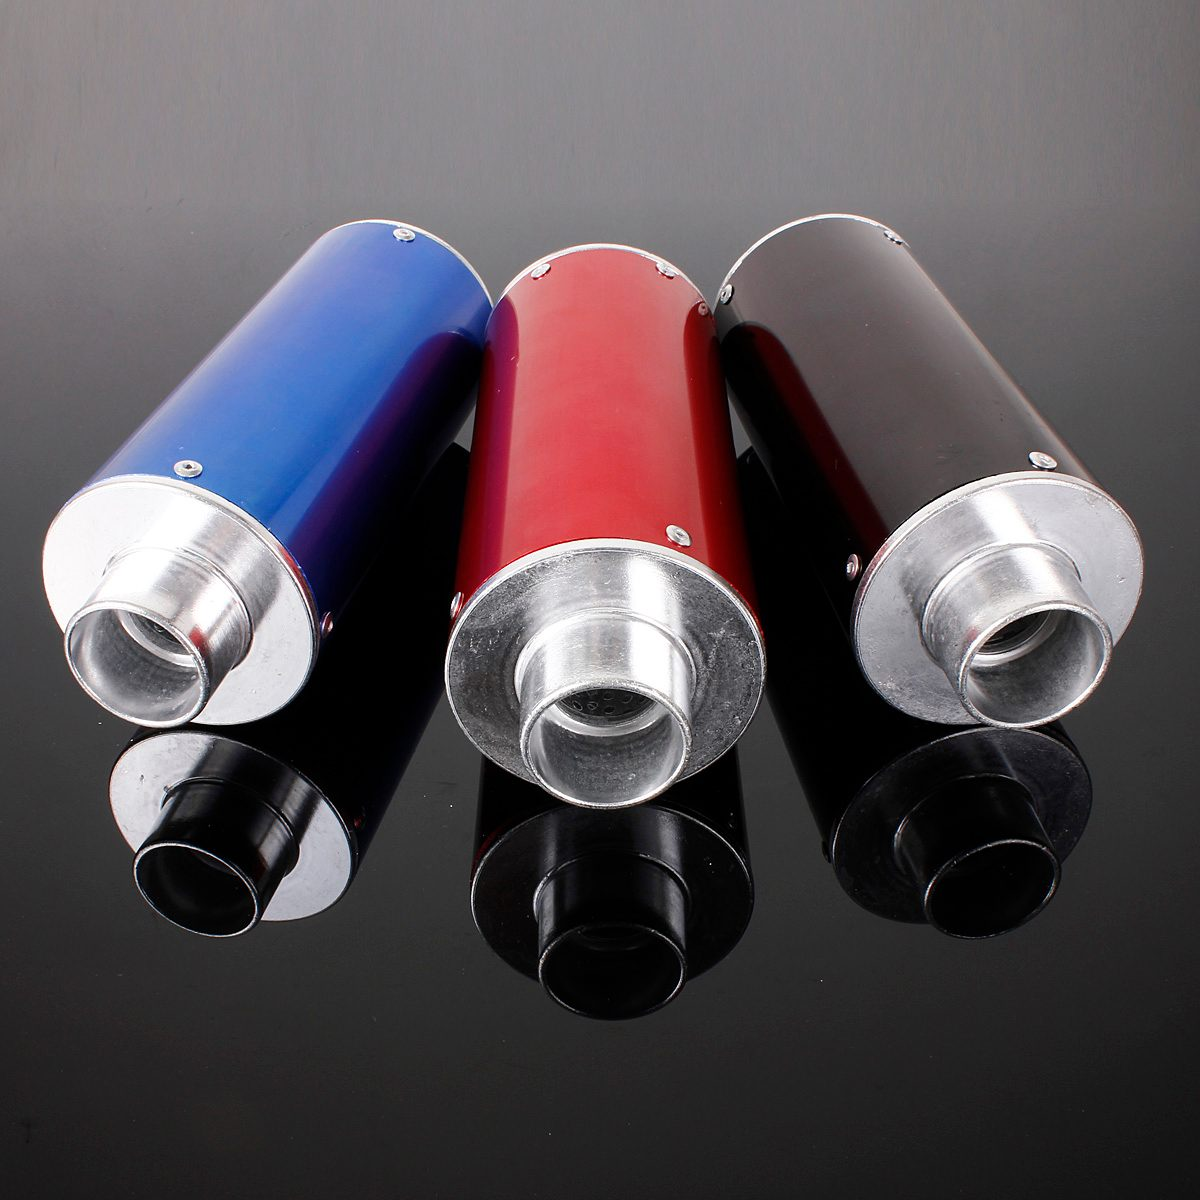 Black /Blue /Red Motorcycle Exhaust Muffler Thumpstar Xsport For 110cc 125cc 4 Storke